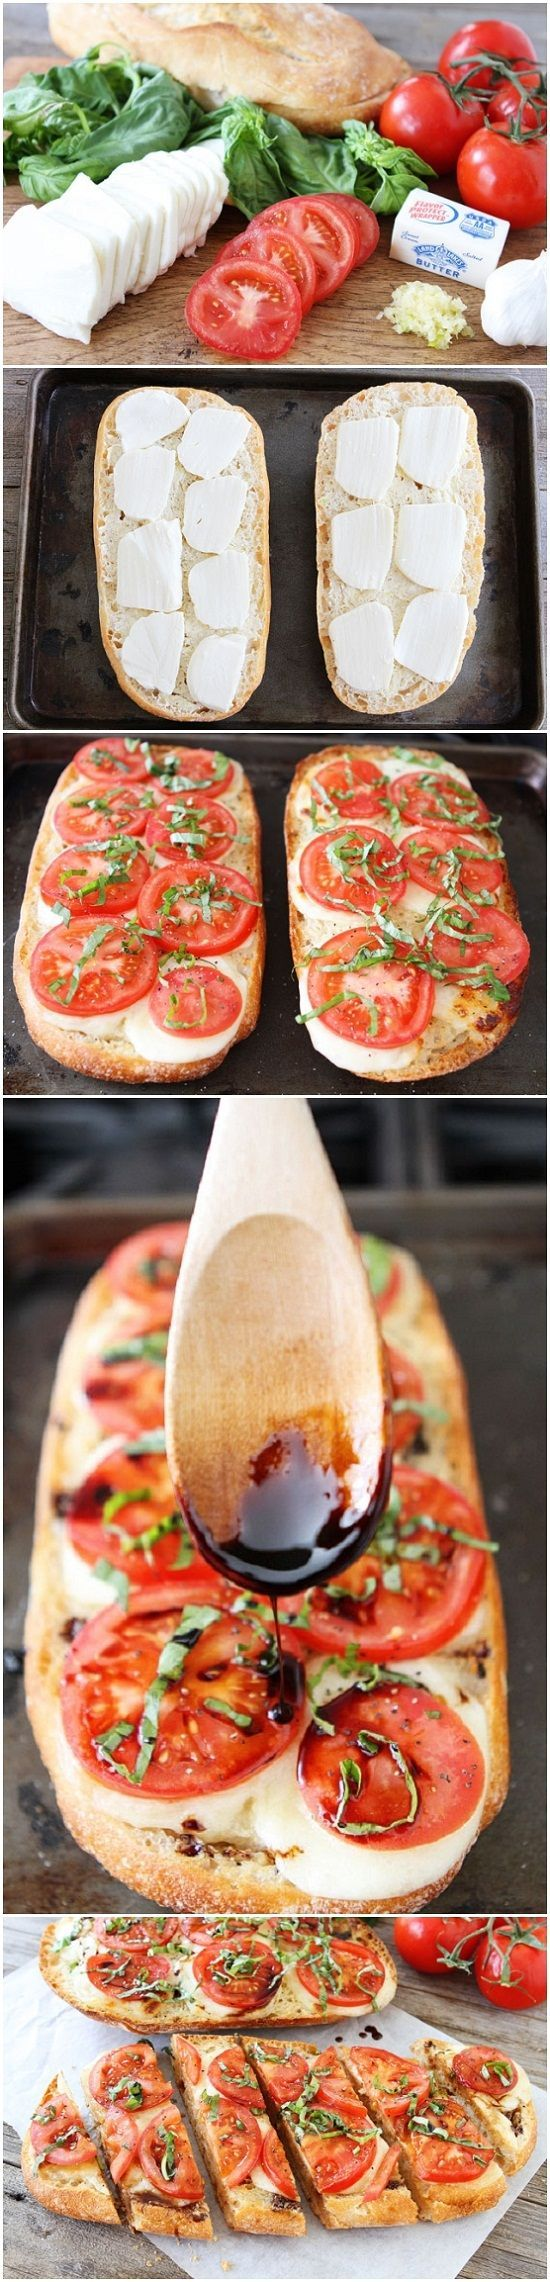 Caprese Garlic Bread - 1 loaf ciabatta bread, horizontally cut in half 4 tablespoons salted butter 3 cloves garlic, minced 12 oz. fresh mozzarella cheese, sliced 1/2 cup balsamic vinegar 2 medium tomatoes, sliced Salt and freshly ground black pepper, to taste 1/3 cup chopped fresh basil